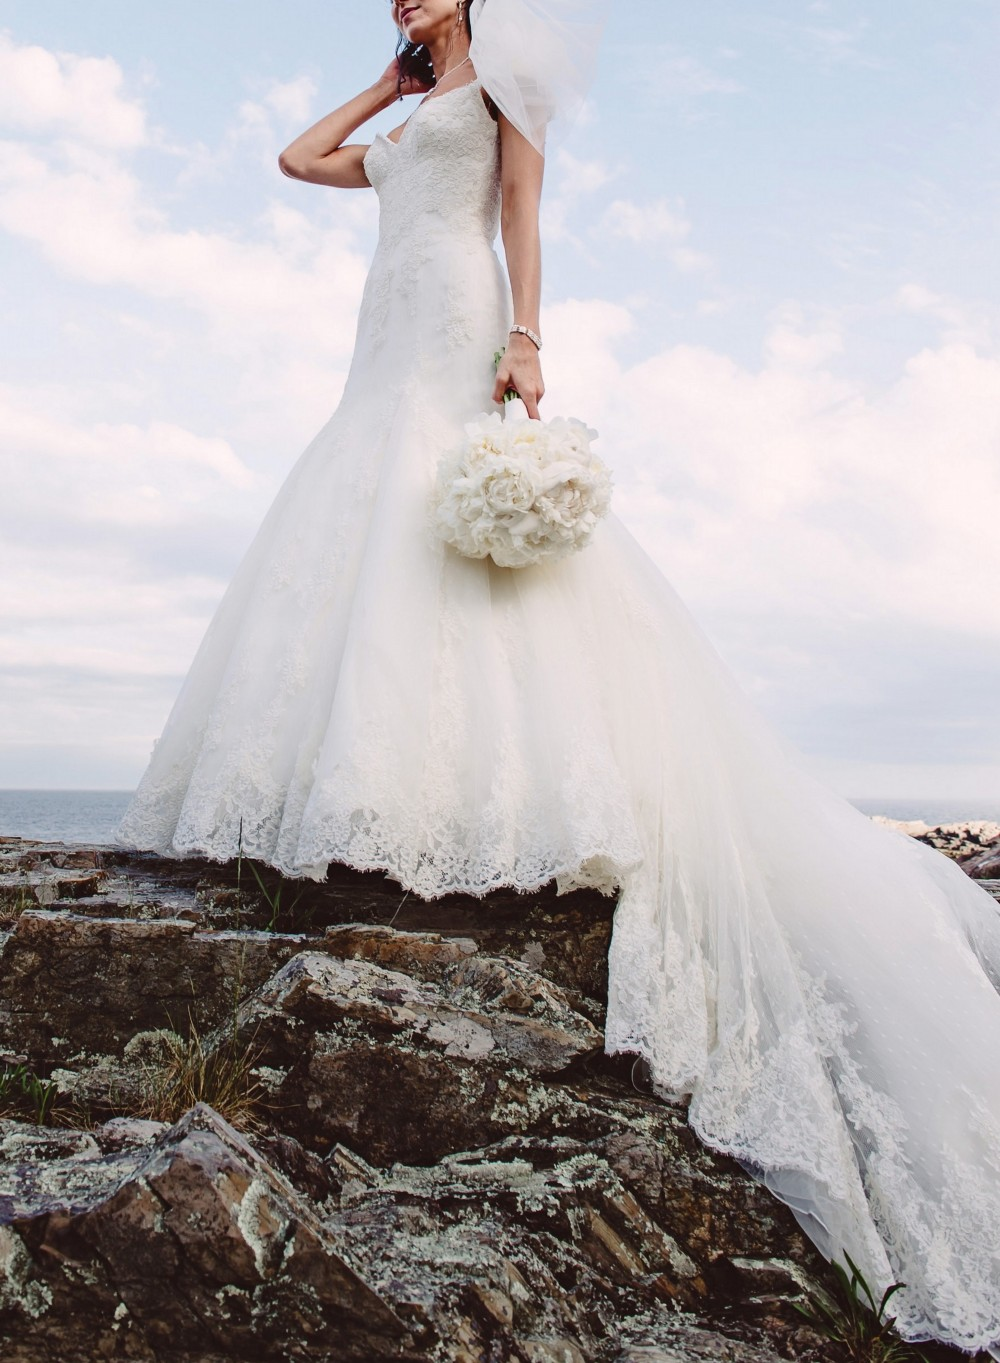 San patrick cobalto second hand wedding dress on sale 48 off for Second hand wedding dresses san diego